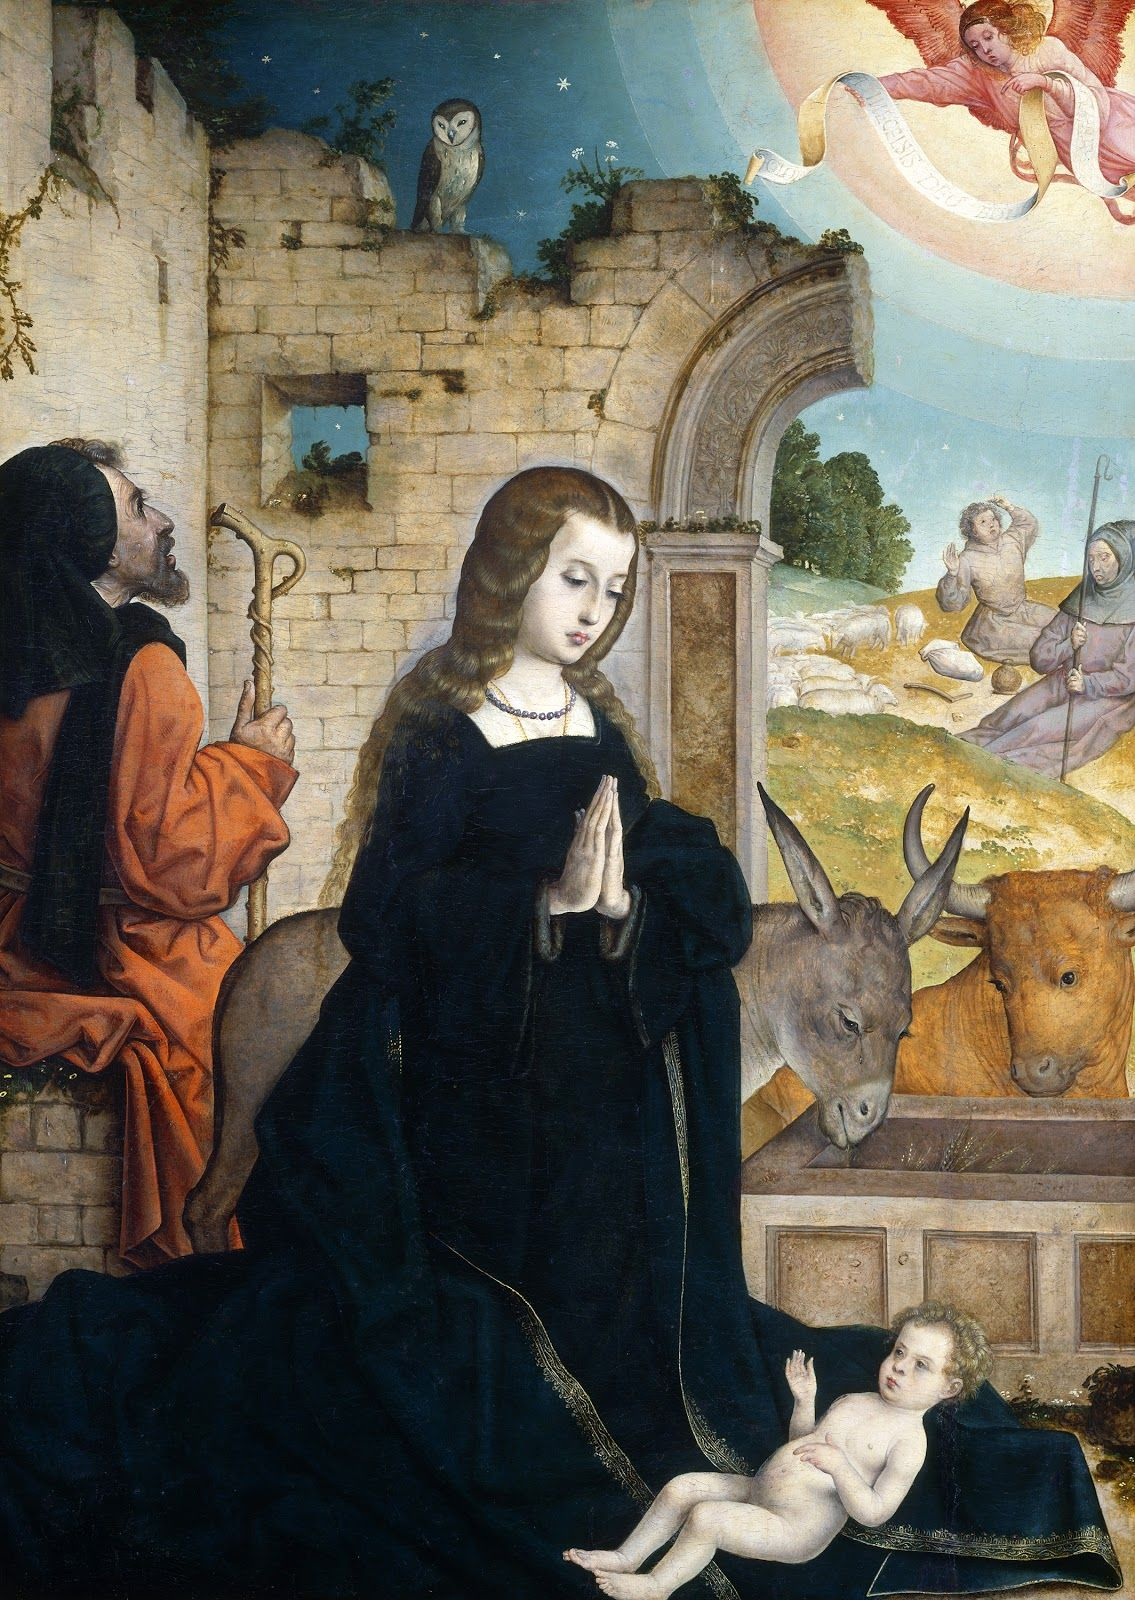 Juan de Flandes Northern Renaissance painter National